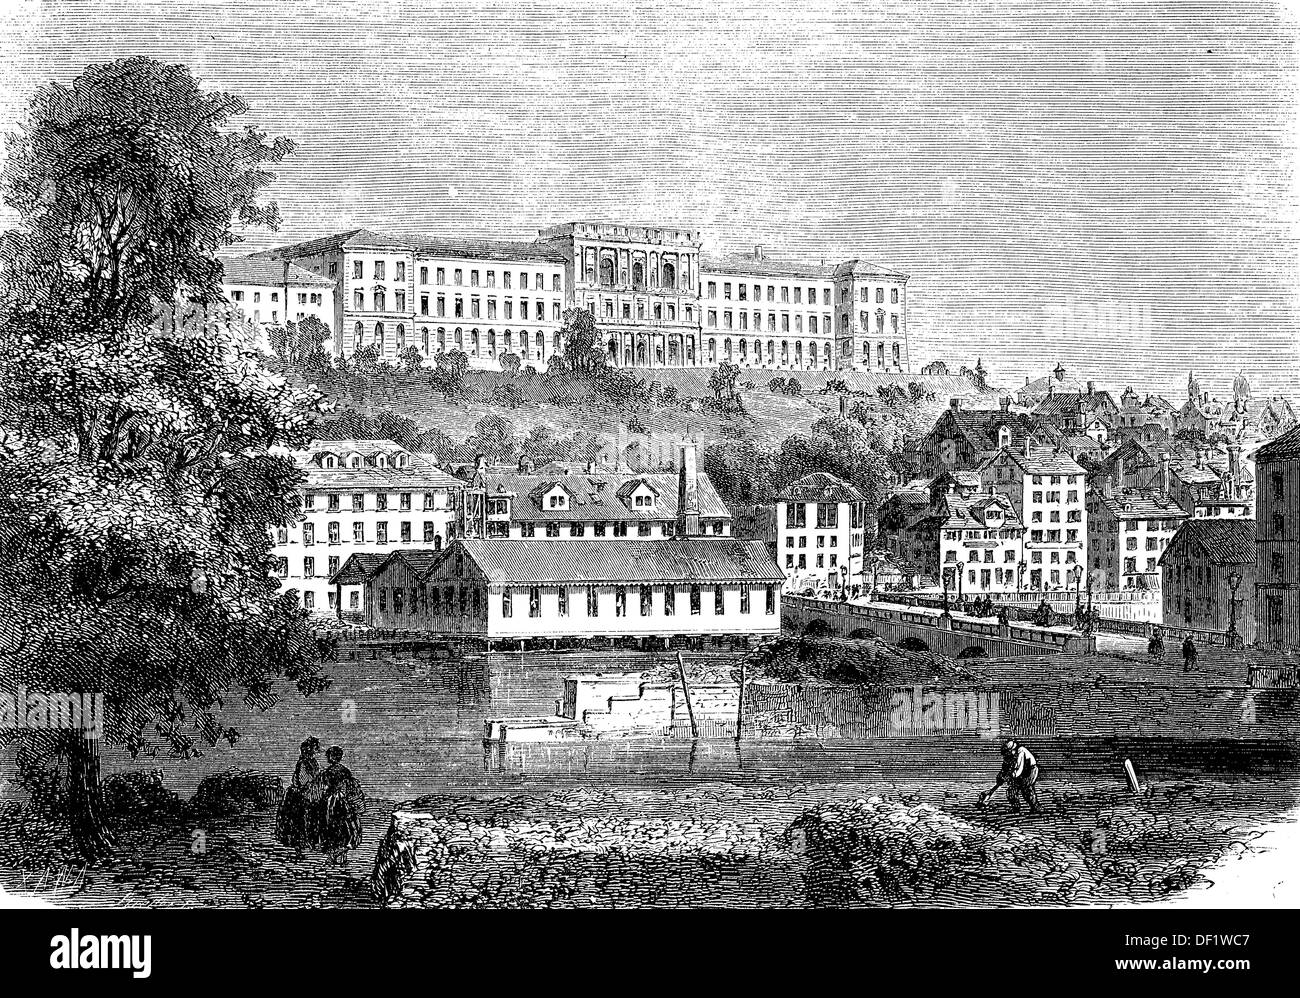 The Federal Polytechnic in Zurich, Switzerland, woodcut from 1864 - Stock Image